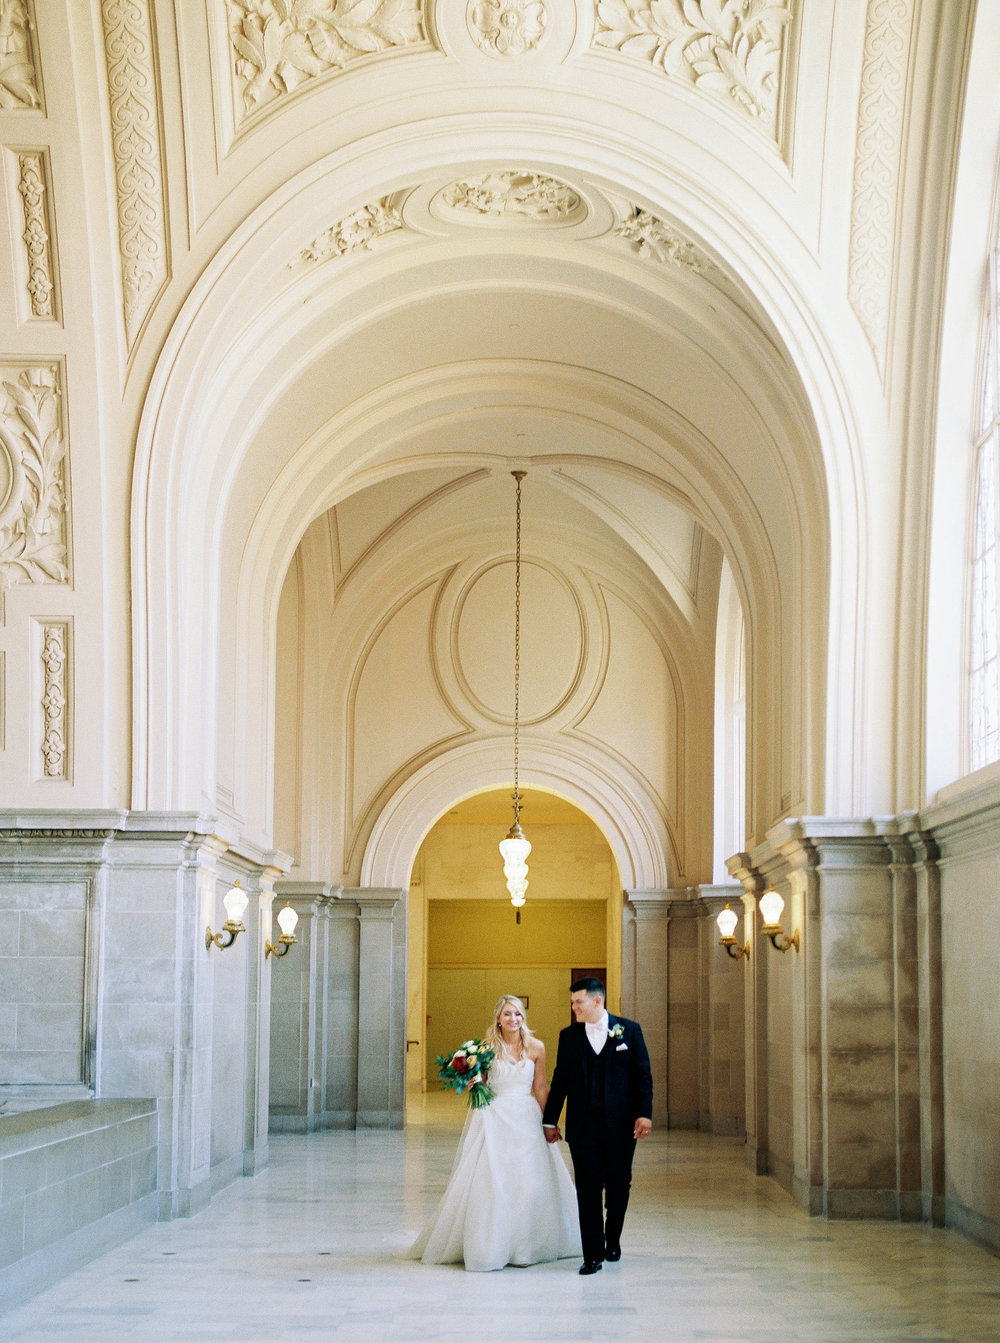 DennisRoyCoronel_Photography_SanFranciscoCityHall_Wedding-55.jpg